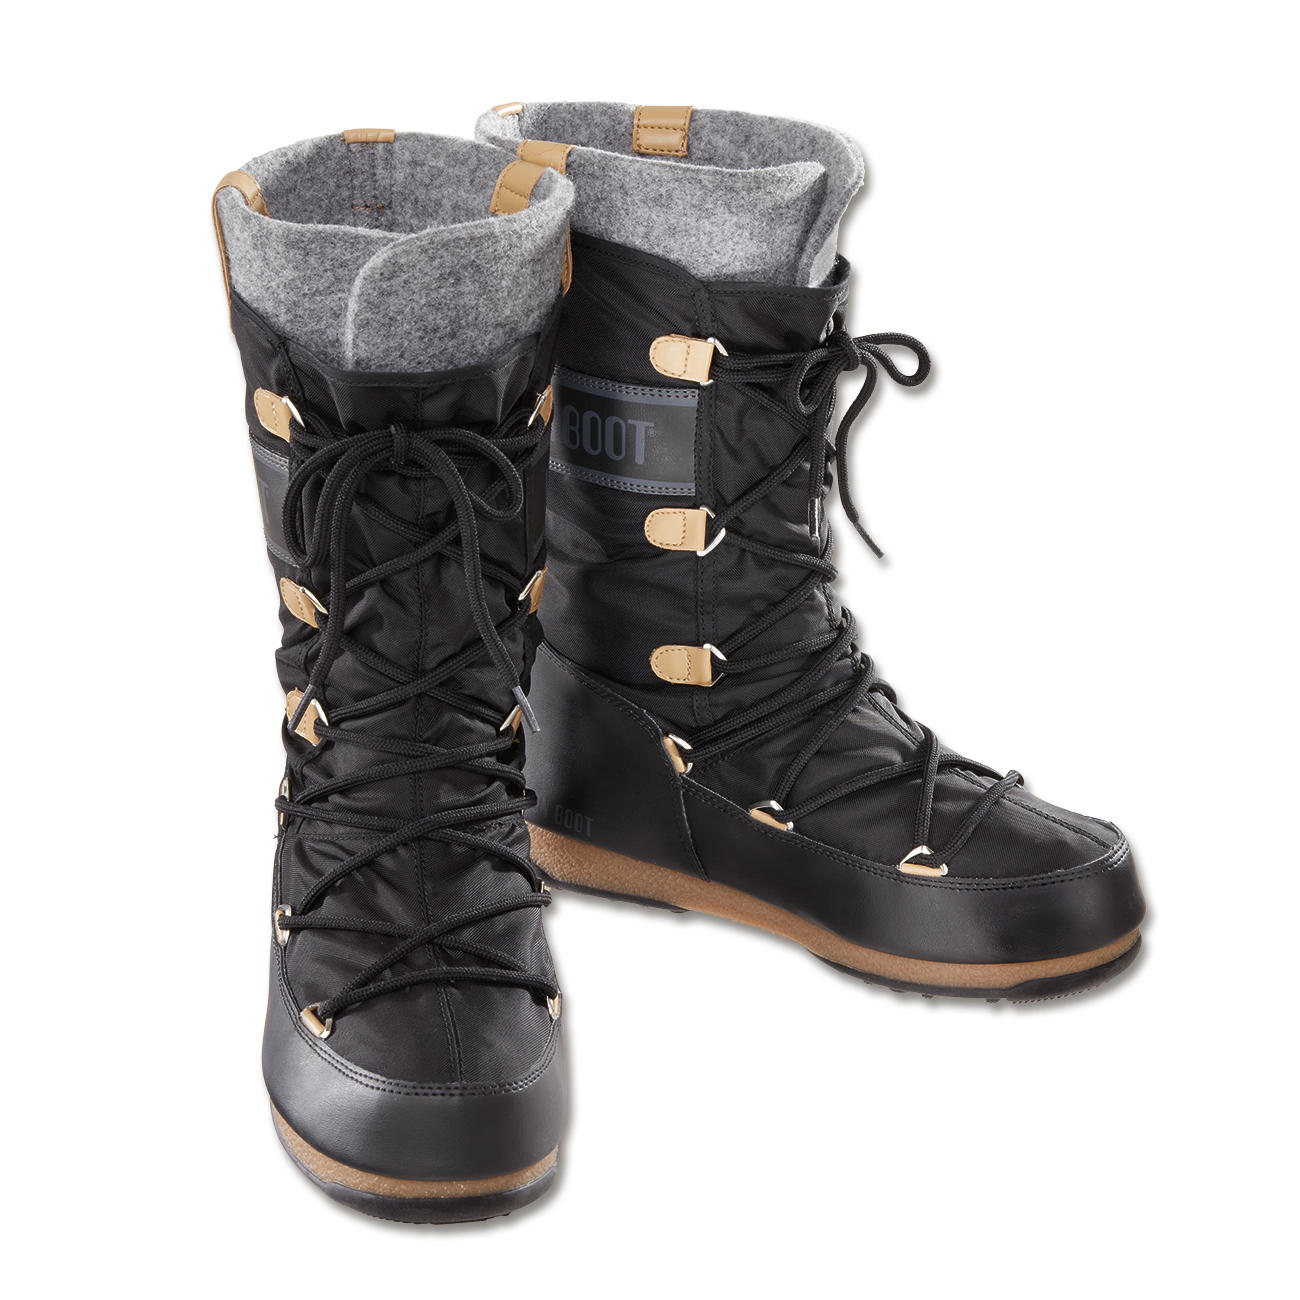 Best Fashion Boots For The Snow